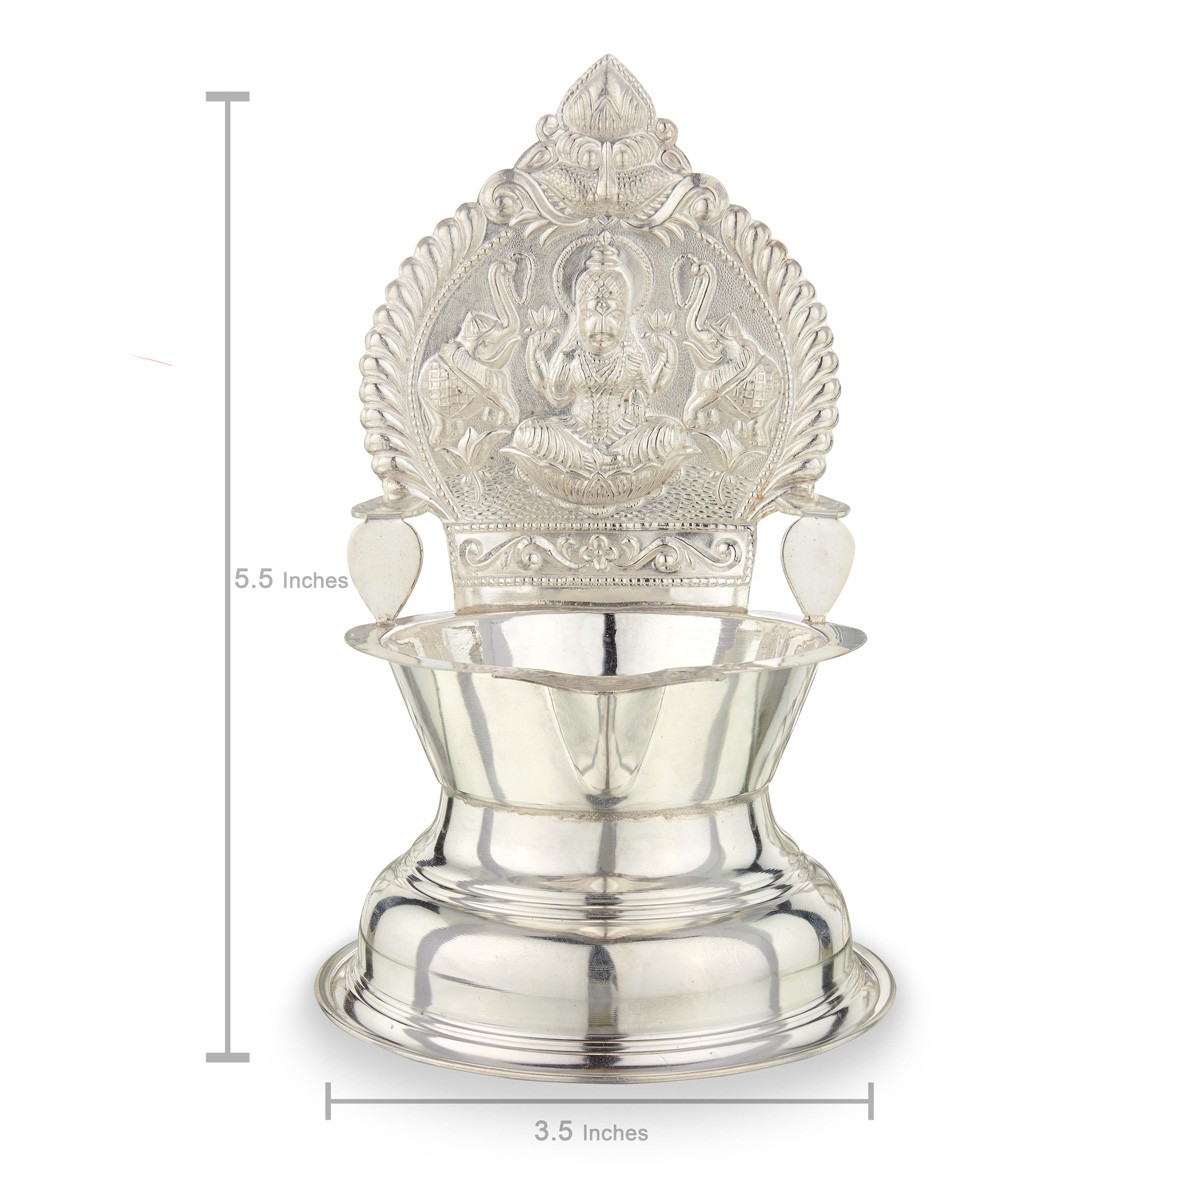 Kamatchi Lamp in Silver! - Silver lamps - Silver Articles for Silver Kamatchi Lamp  34eri